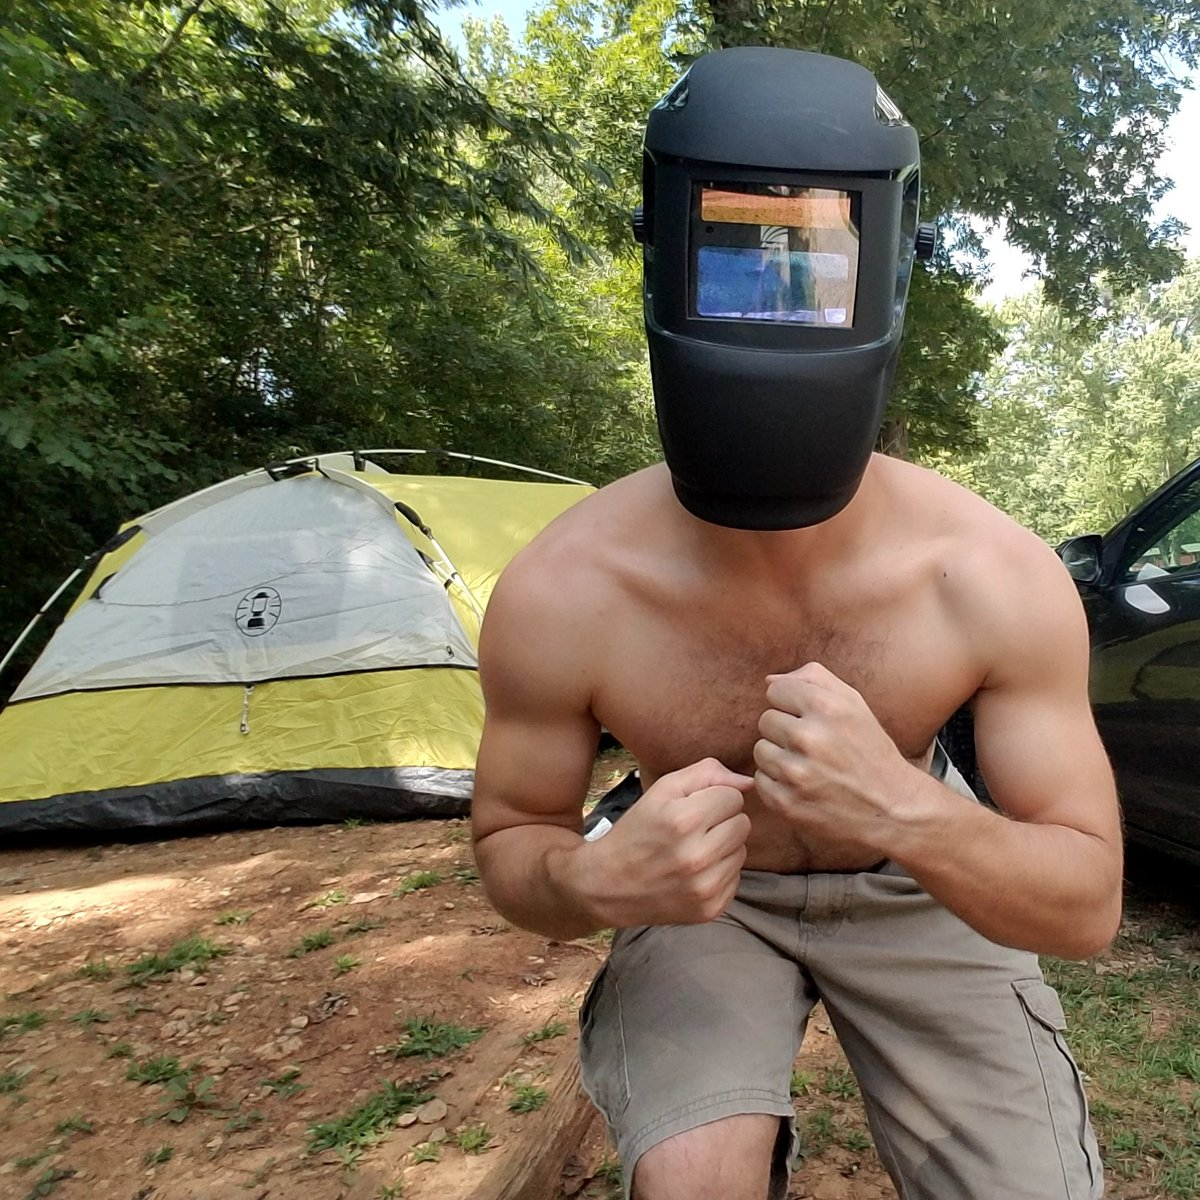 I&#39;m pumped &amp; ready for the Eclipse! #DarthCharles #SunWars #GunWars #Damn..I look sexy when you can&#39;t see my face.. <br>http://pic.twitter.com/iPK0ND8rlG